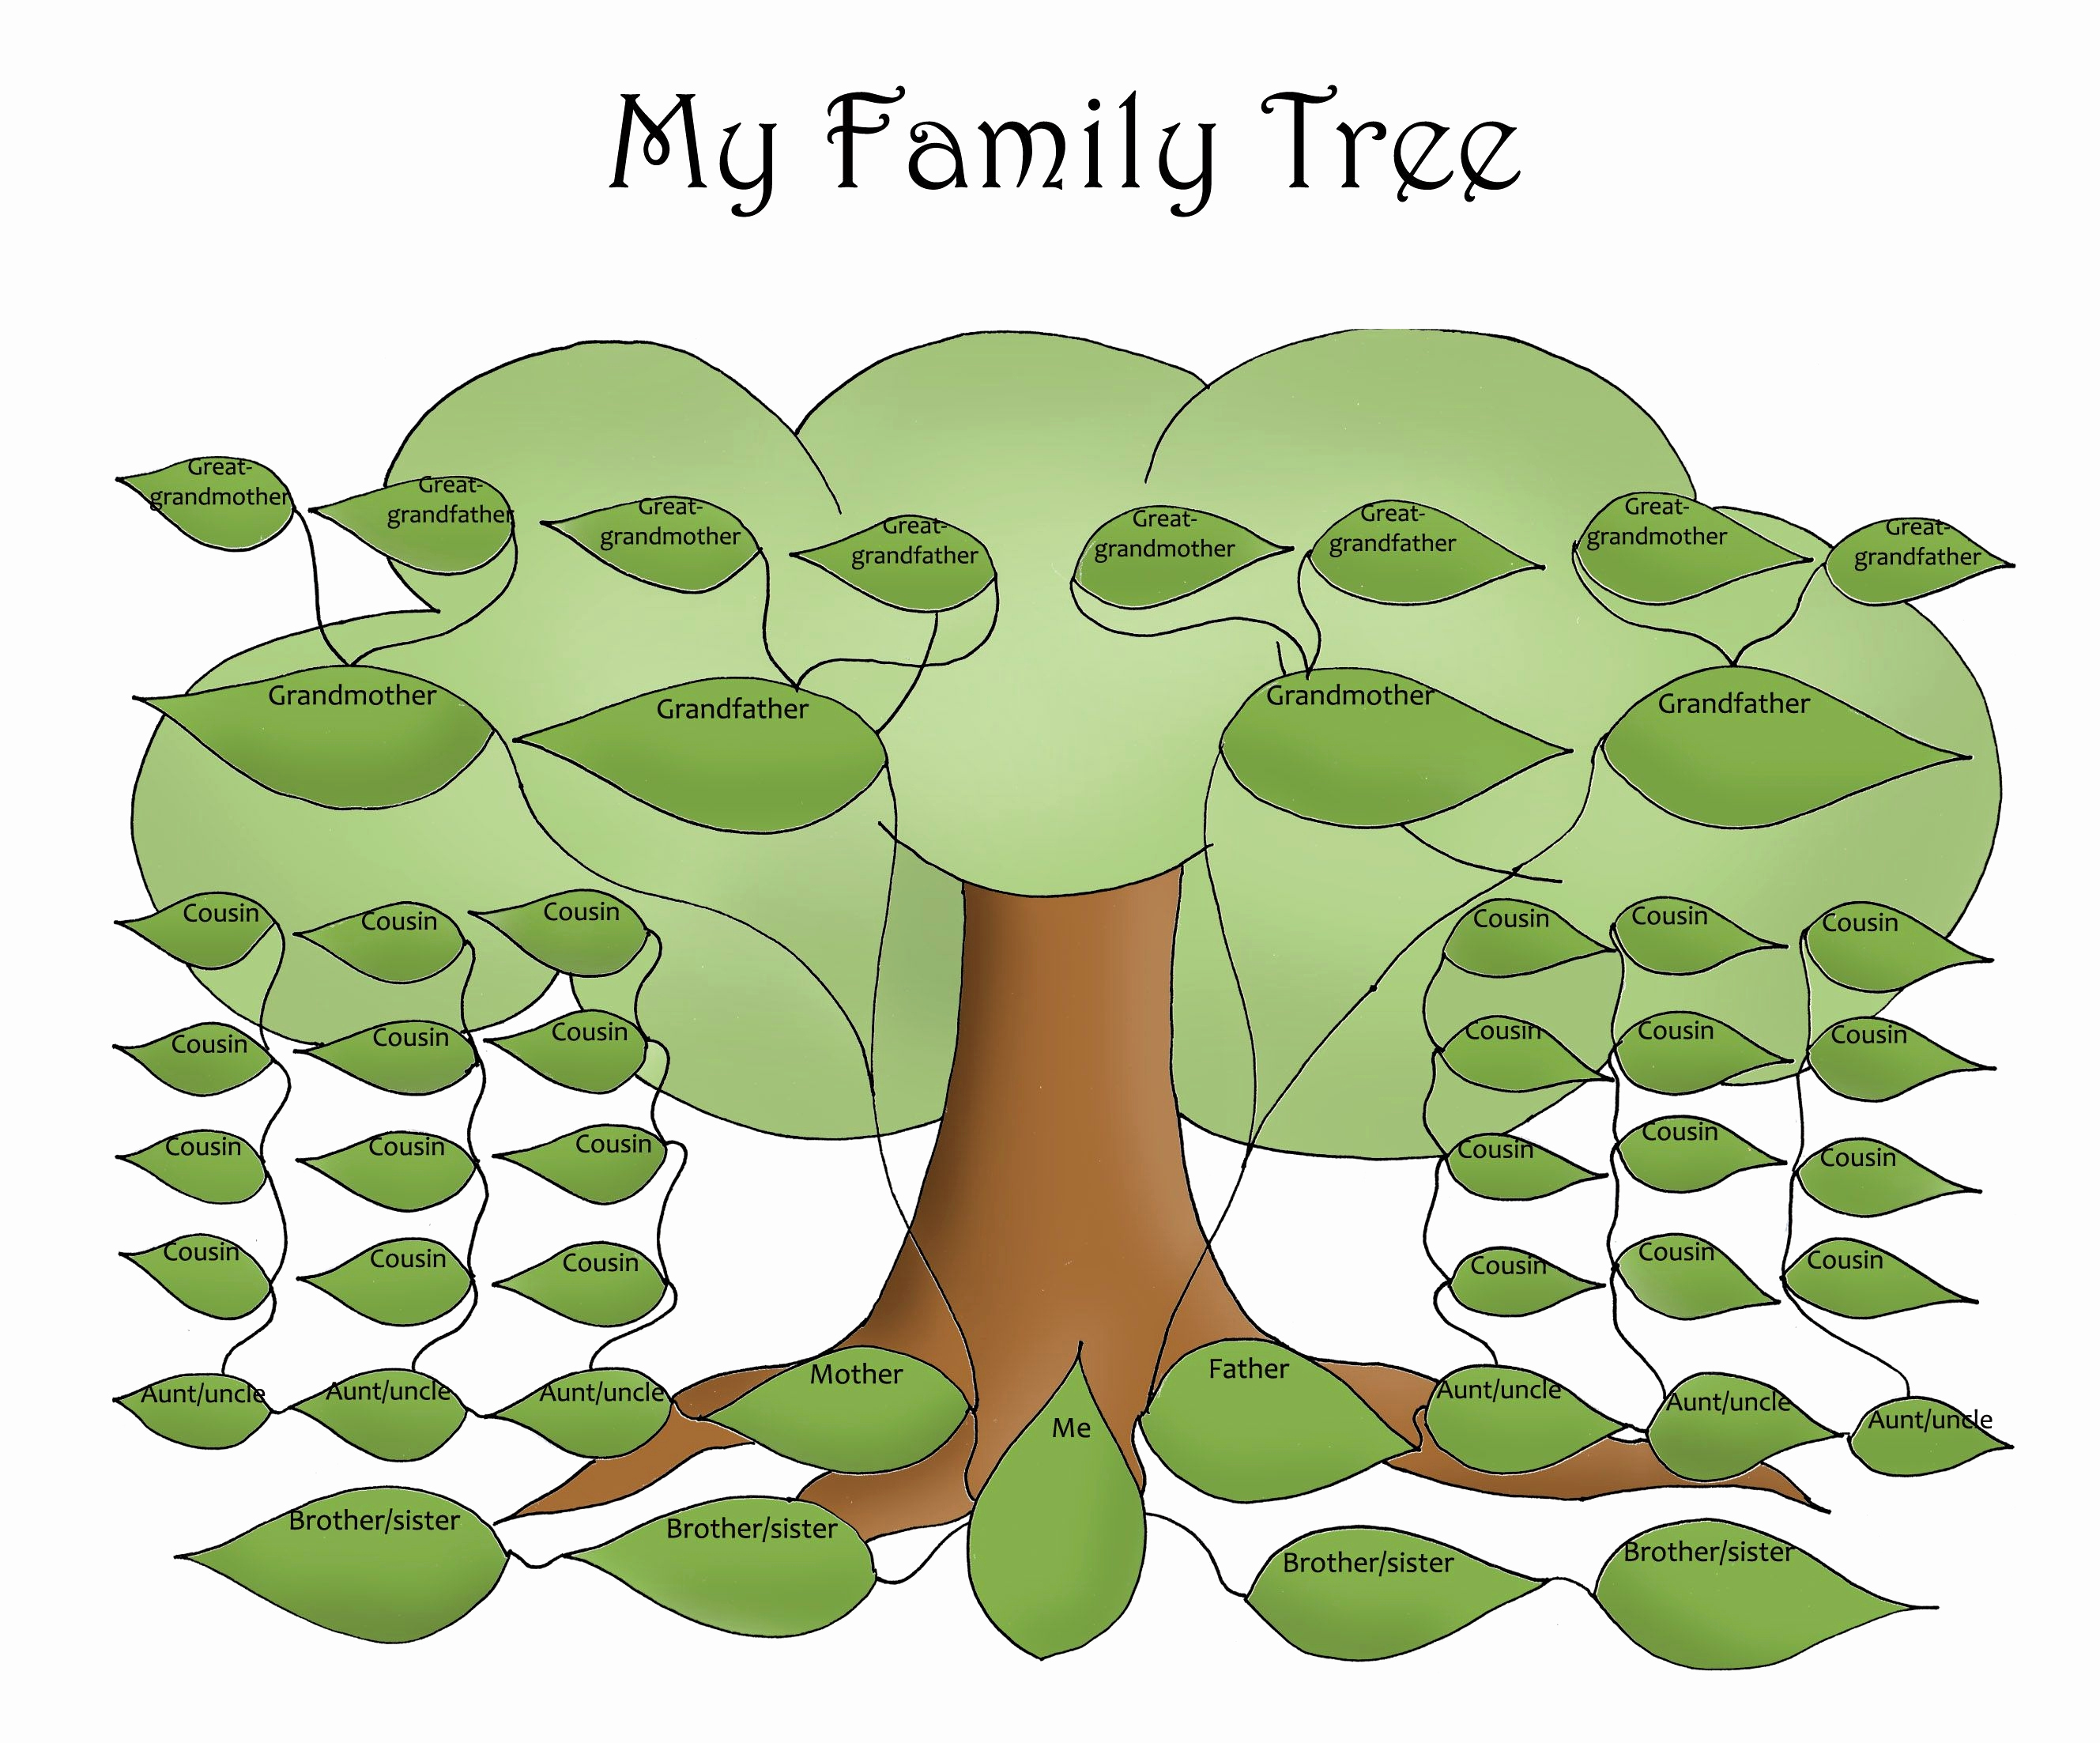 Family Tree Template Online New Free Editable Family Tree Template Daily Roabox